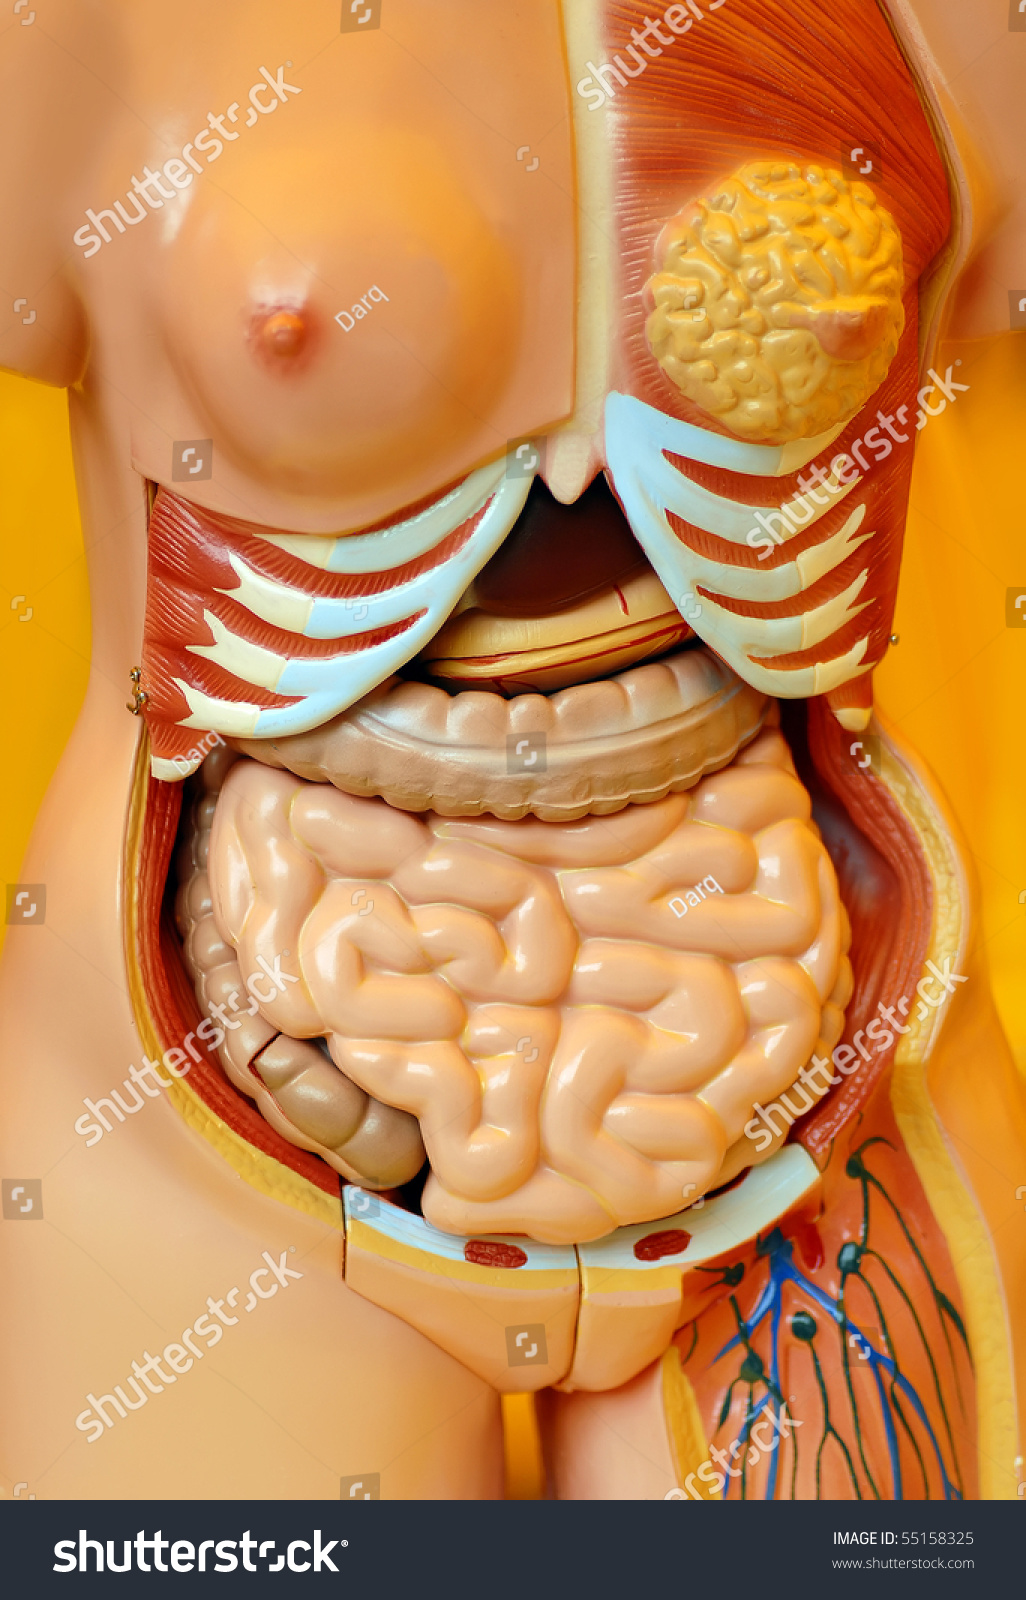 Organs Inside Female Body Learning Artificial Stock Photo Edit Now